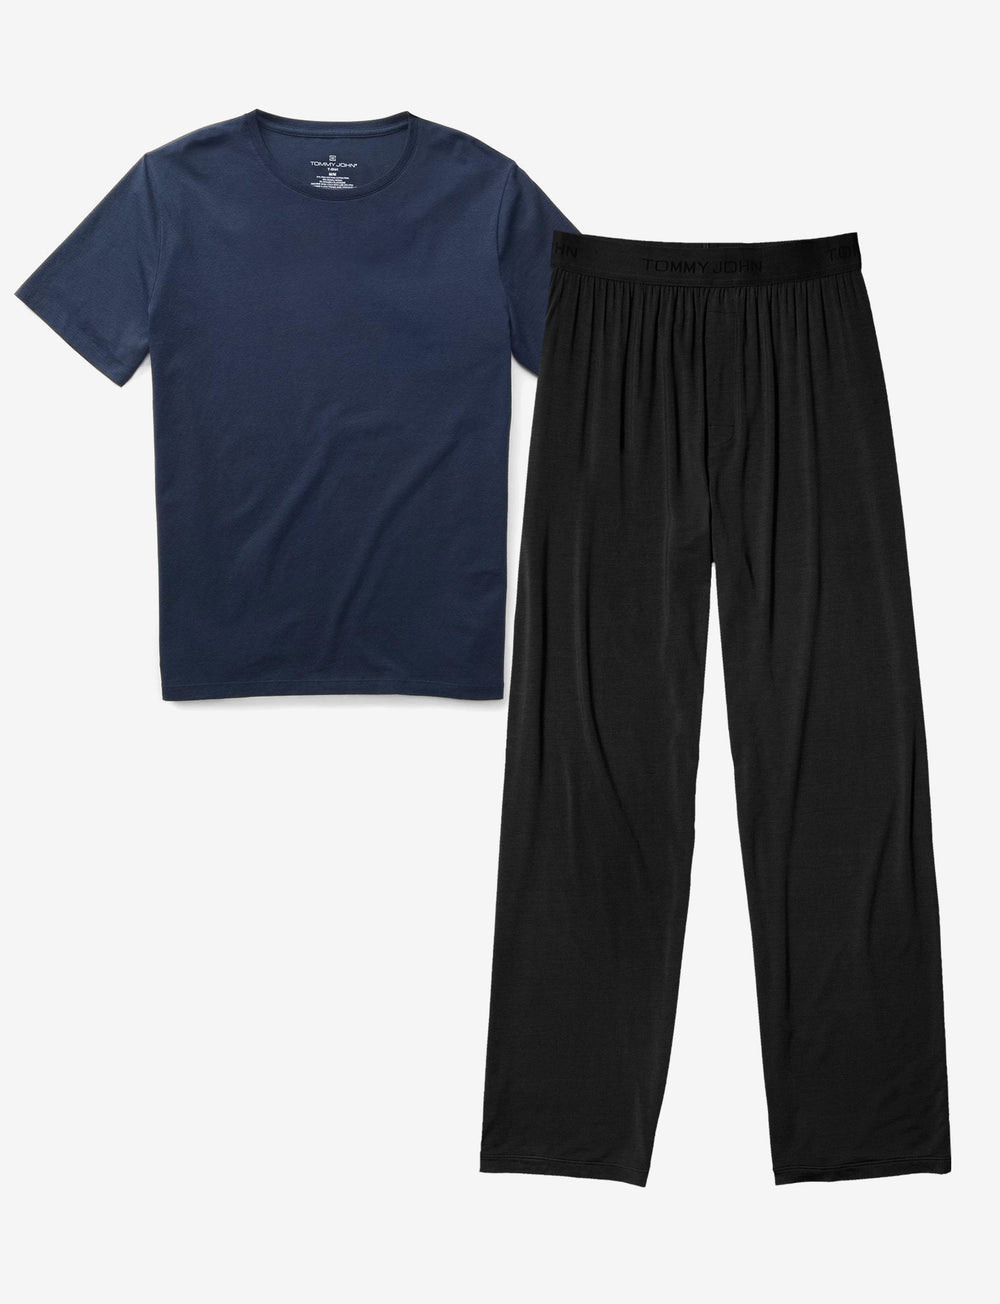 Lounge Pants And Tee Pack Details Image